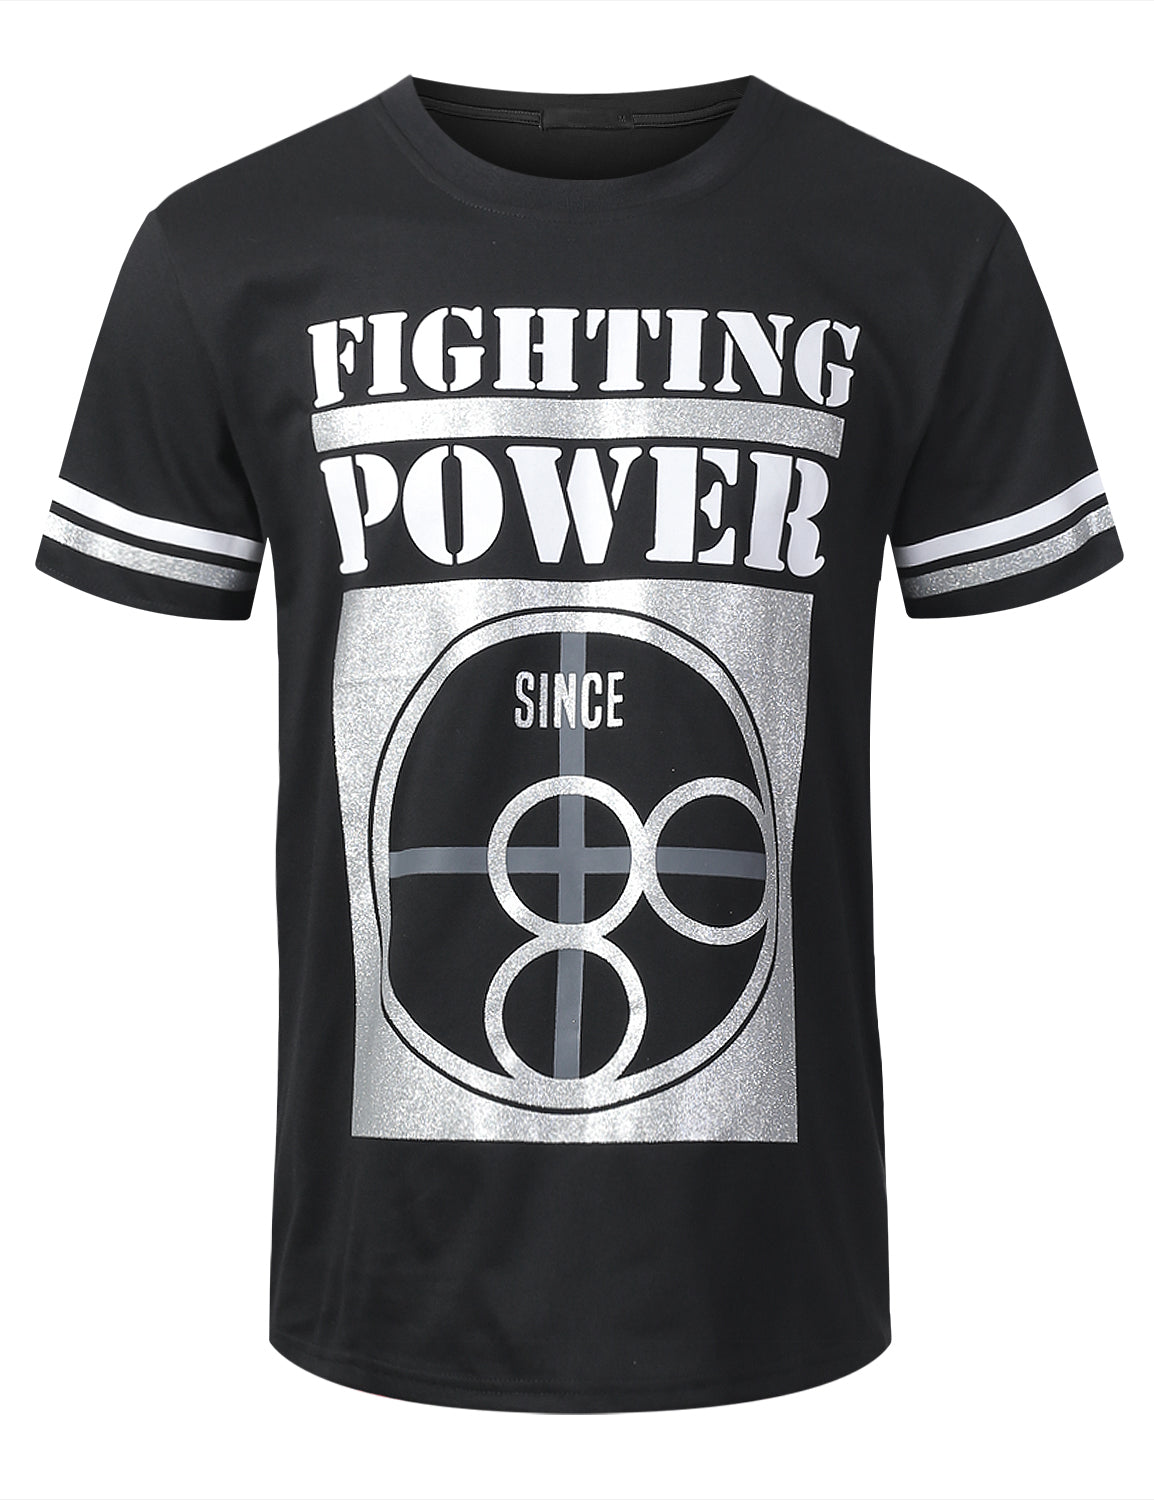 BLACK FIGHTING POWER Graphic T-shirt - URBANCREWS